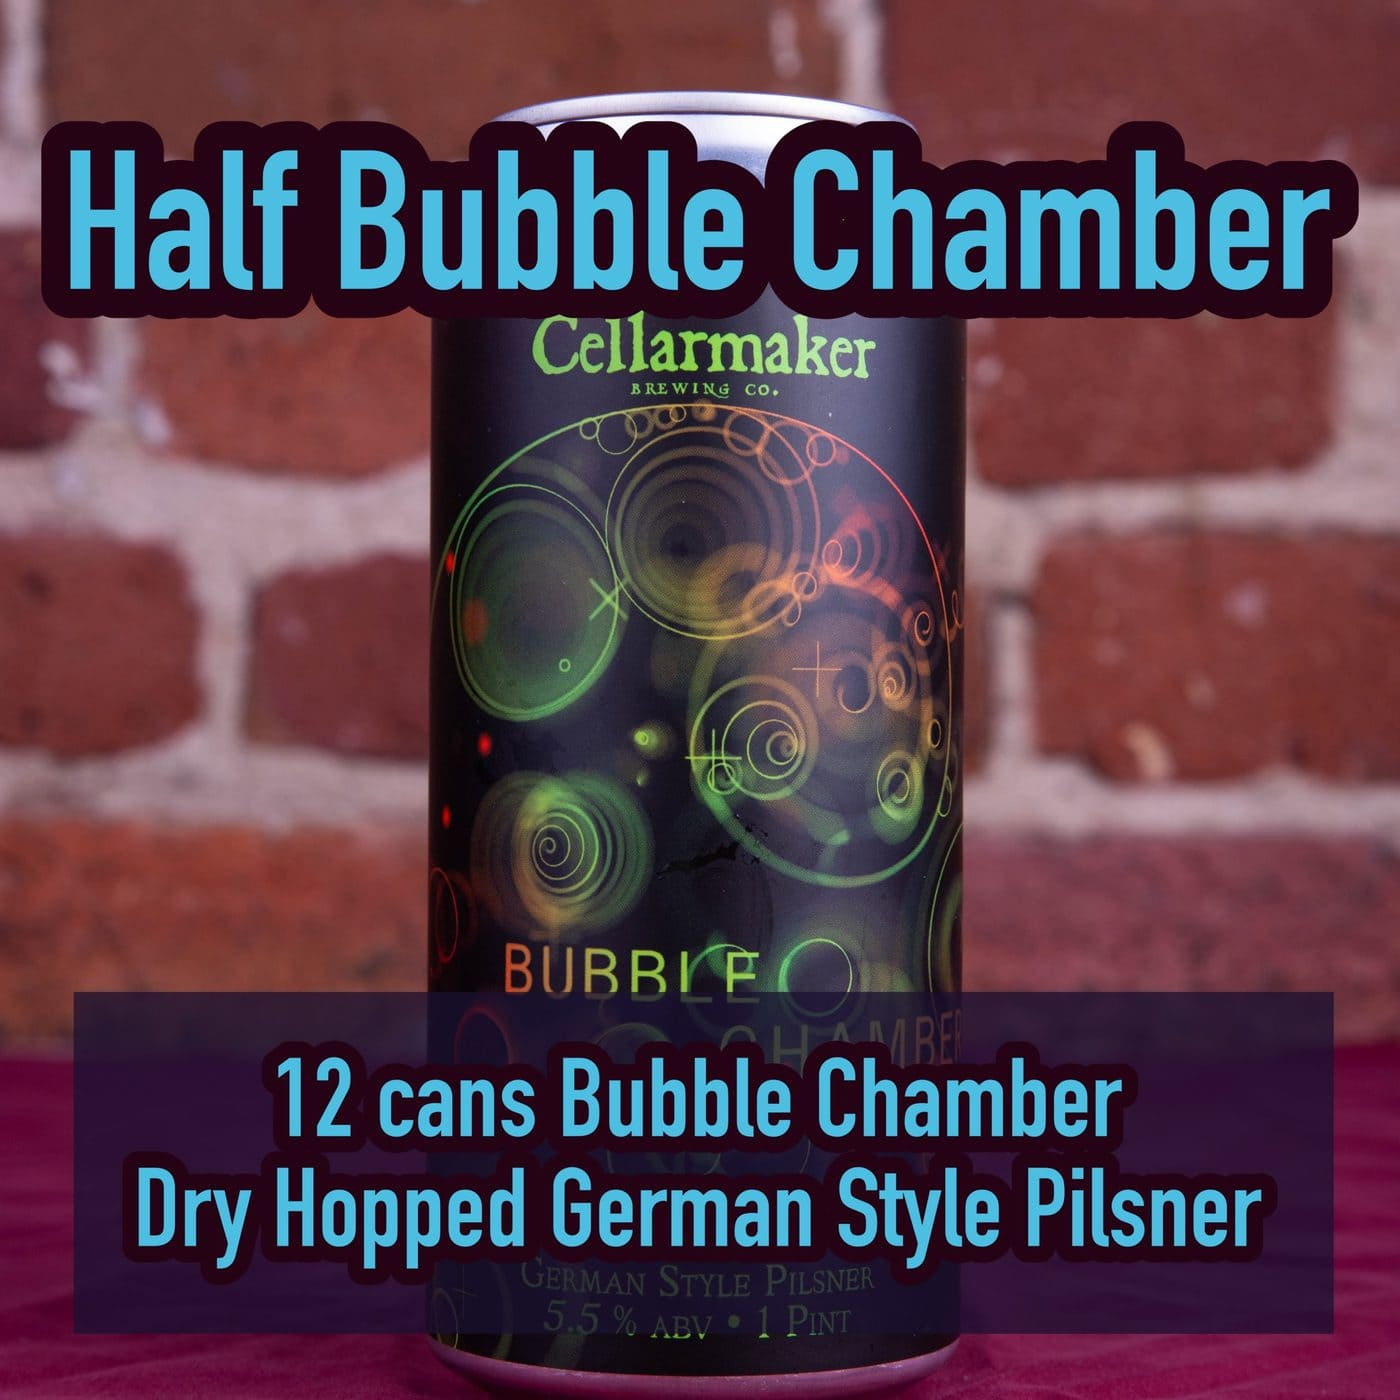 12 CANS Bubble Chamber Pilsner – Shipping Out Tuesday 4/20 For Next Day Delivery*